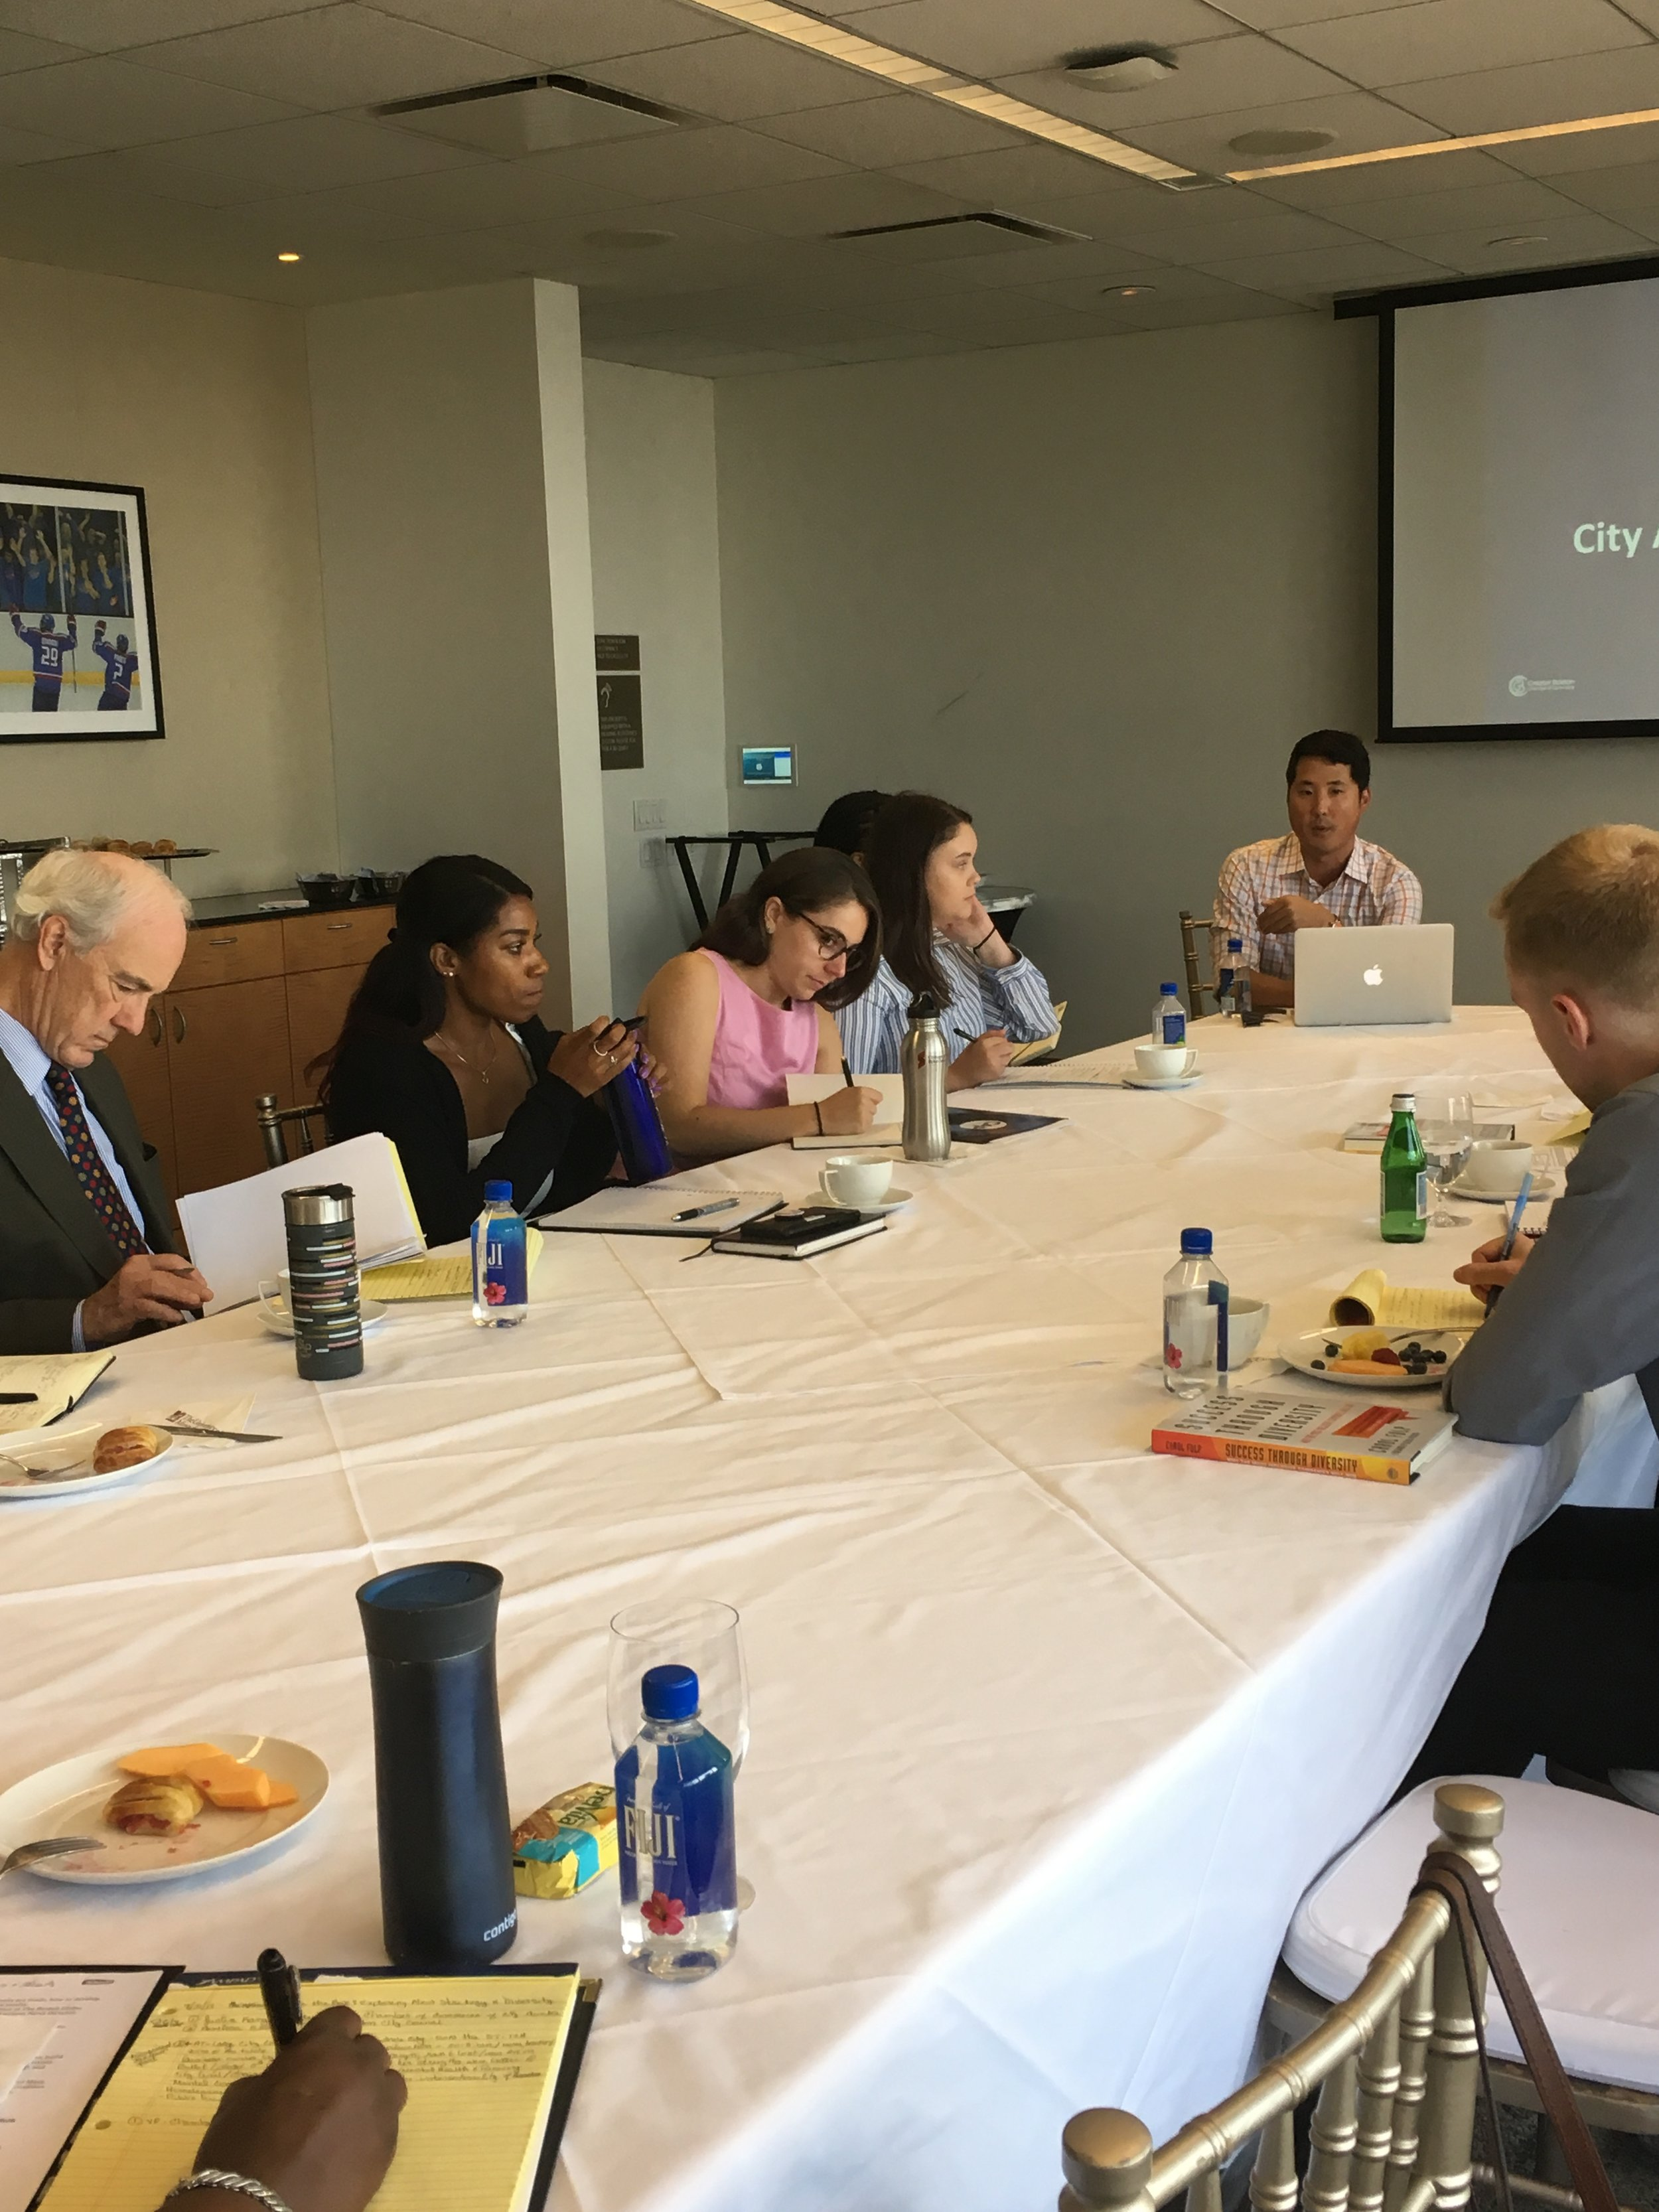 Robert Turner, Director of Pinnacle Projects, and Jessica Amedee, Liz Berman, and Sarah Nordberg, listen to Justin Kang  VP of the Greater Boston Chamber of Commerce and Founder of City Awake at the UMass Club on 7.31.